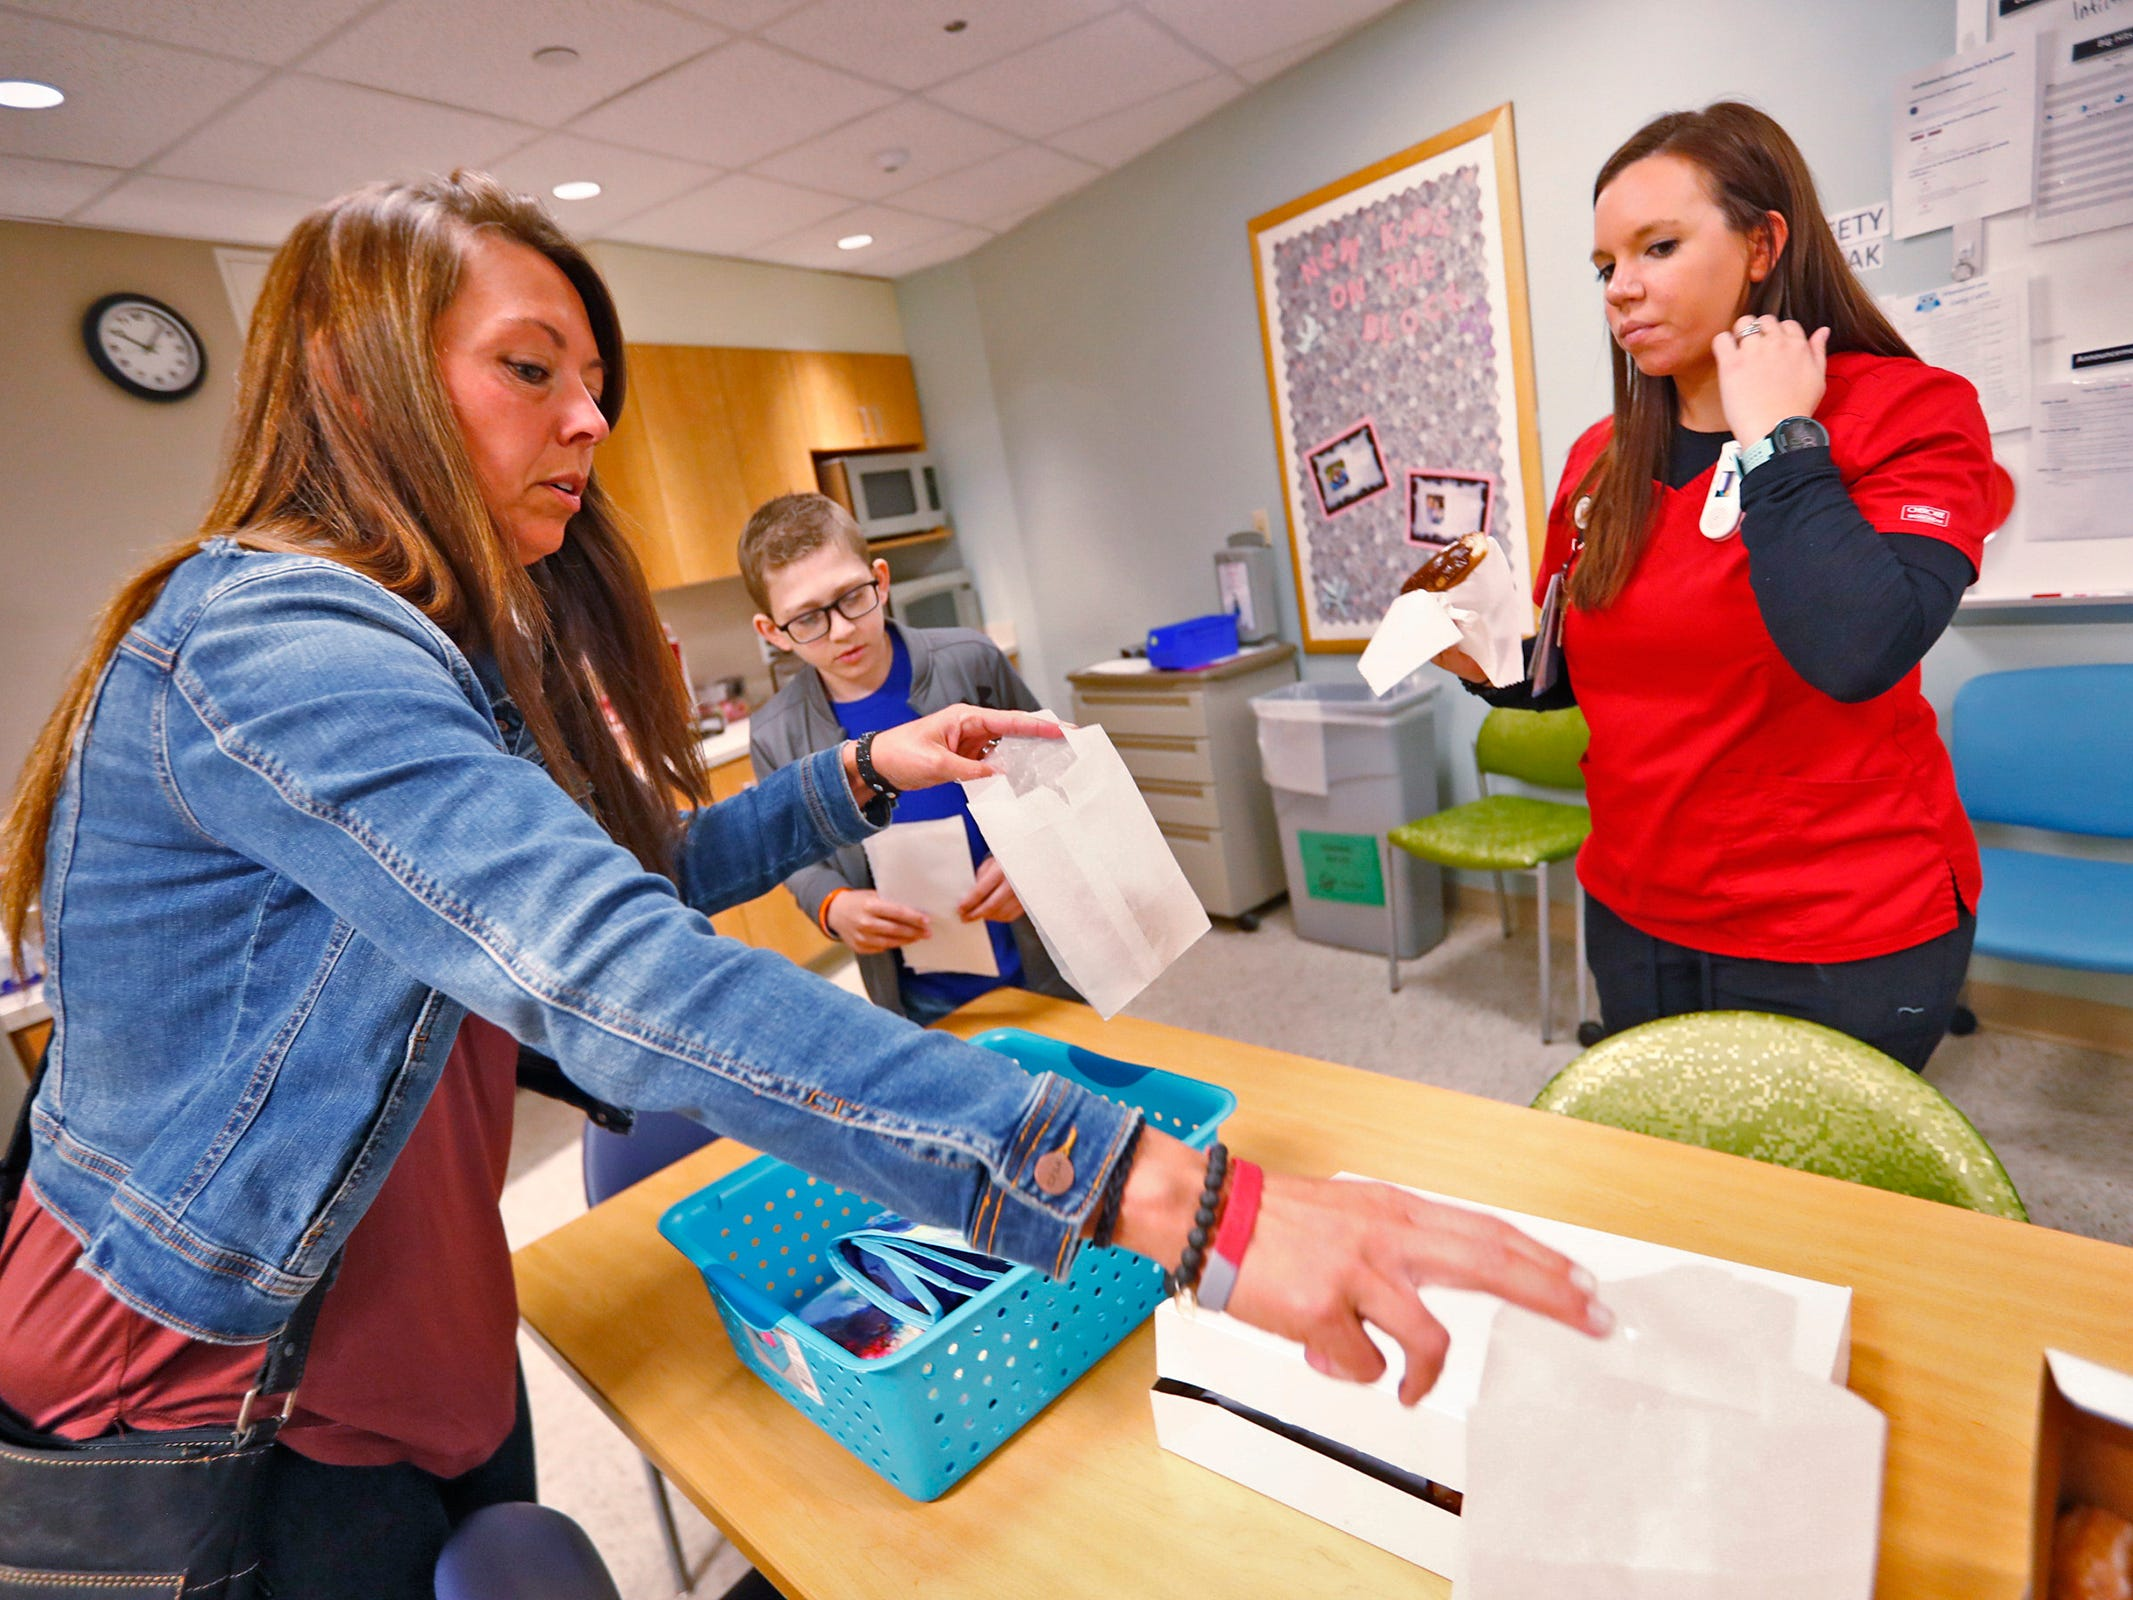 Cameron Kirk, center, gets ready to have doughnuts with his mother, Carrie Kirk, left, and his nurse, Rhea Watson, right, at the Center for Pediatric Cancer and Blood Disorders at the Riley Outpatient Center, Friday, April 19, 2019.  Watson was treated for leukemia when she was younger, diagnosed ten years ago, and now is an RN taking care of similar patients, like Cameron who has diagnosed with the same cancer one year ago.  Now Watson is hoping to be the Leukemia & Lymphoma Society Woman of the Year, in a fundraising effort which ends May 18, 2019.